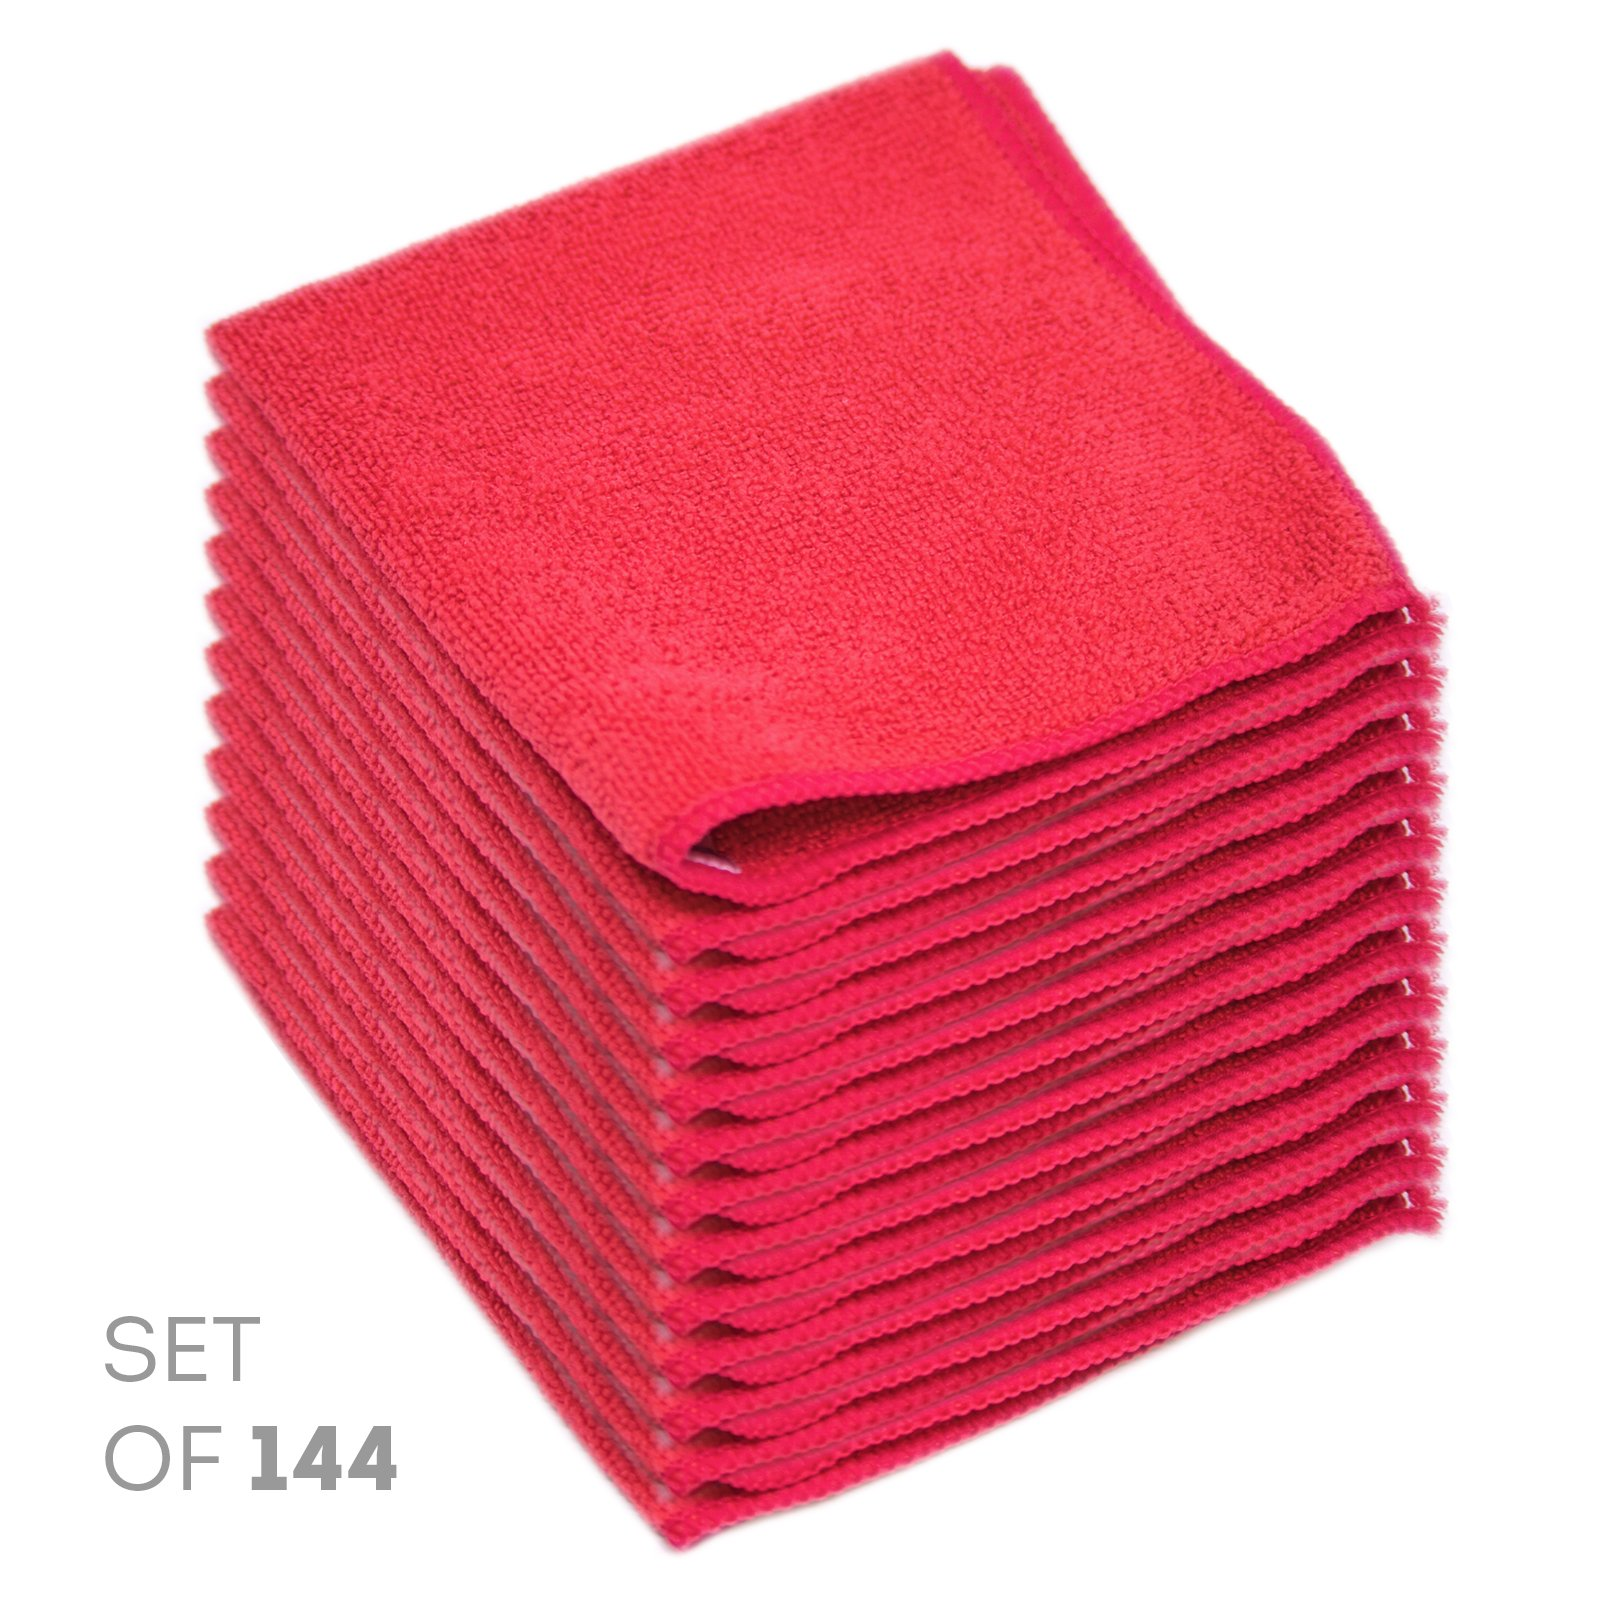 Super Soft Microfiber Cleaning Cloth - Set of 144 Red Washcloths - 12 x 12 Inches - By Etienne Alair